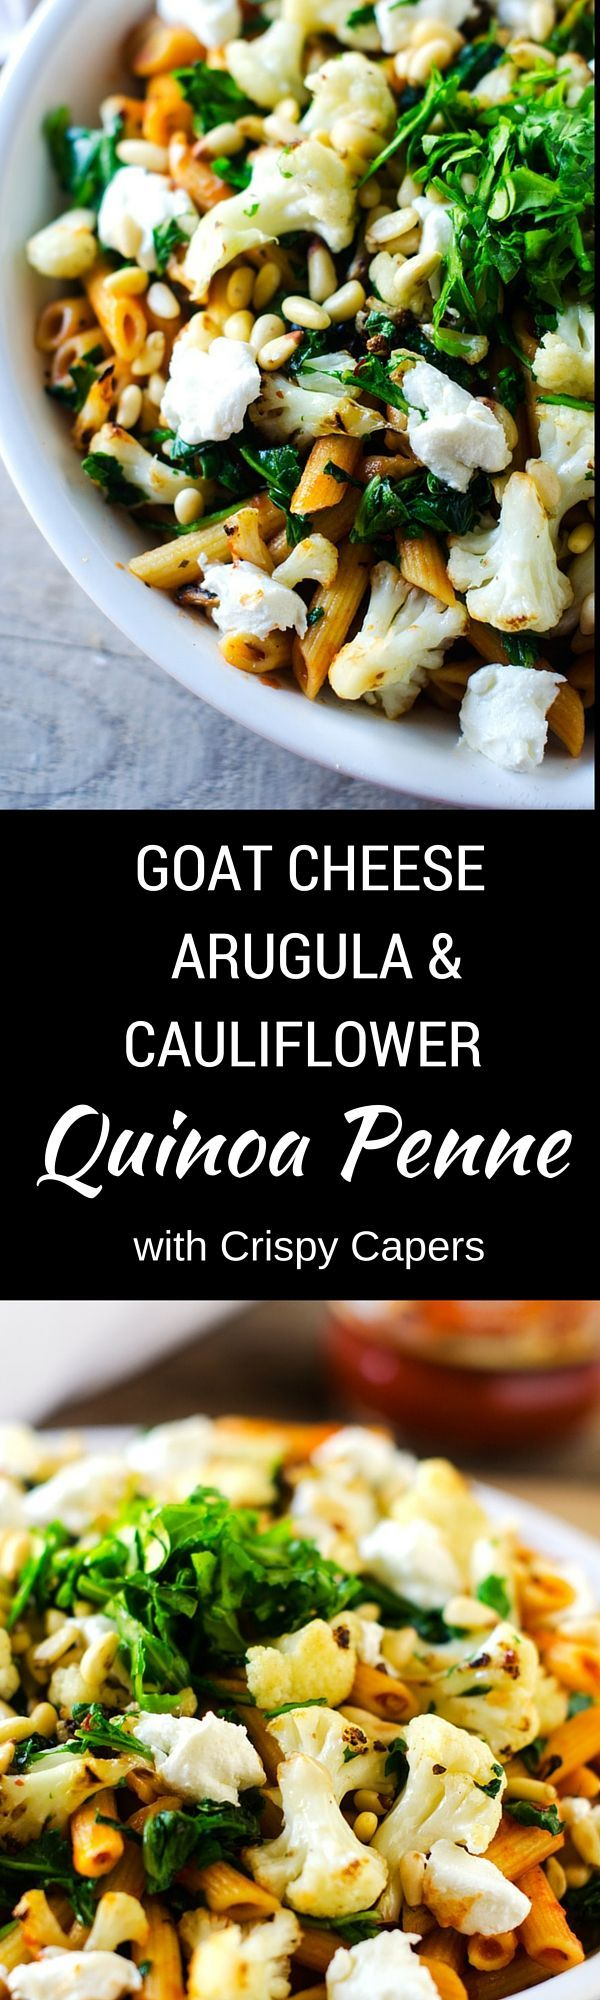 Goat Cheese, Arugula & Cauliflower Quinoa Penne with Crispy Capers - # ...